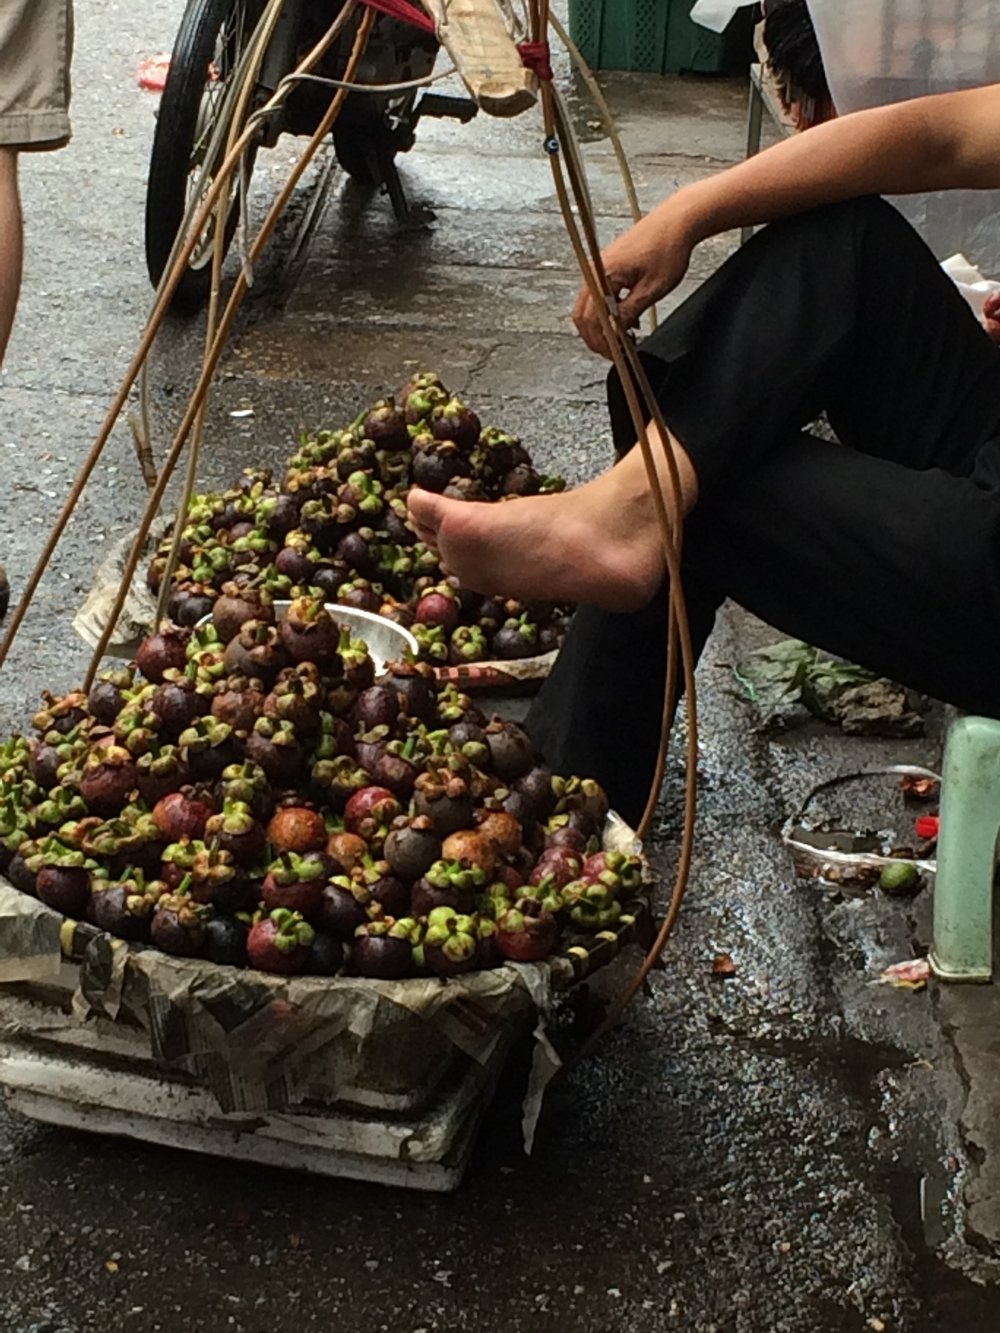 Sidewalk mangosteen seller